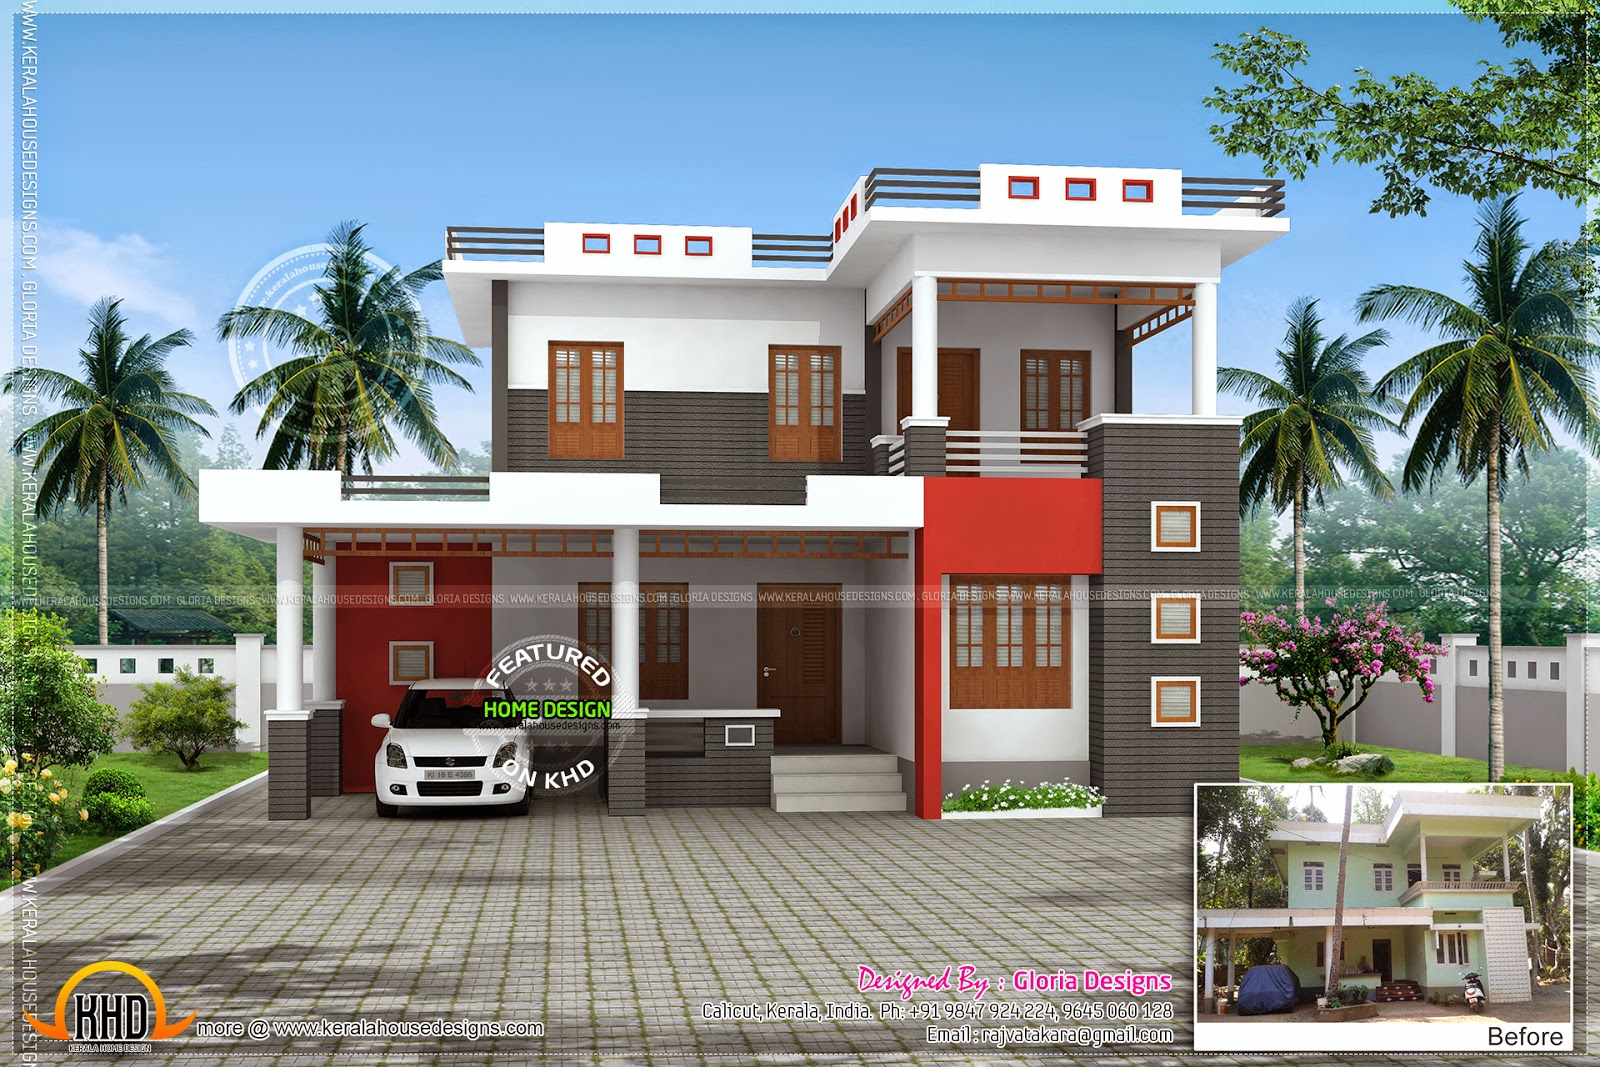 May 2014 Kerala Home Design And Floor Plans 8000 Houses